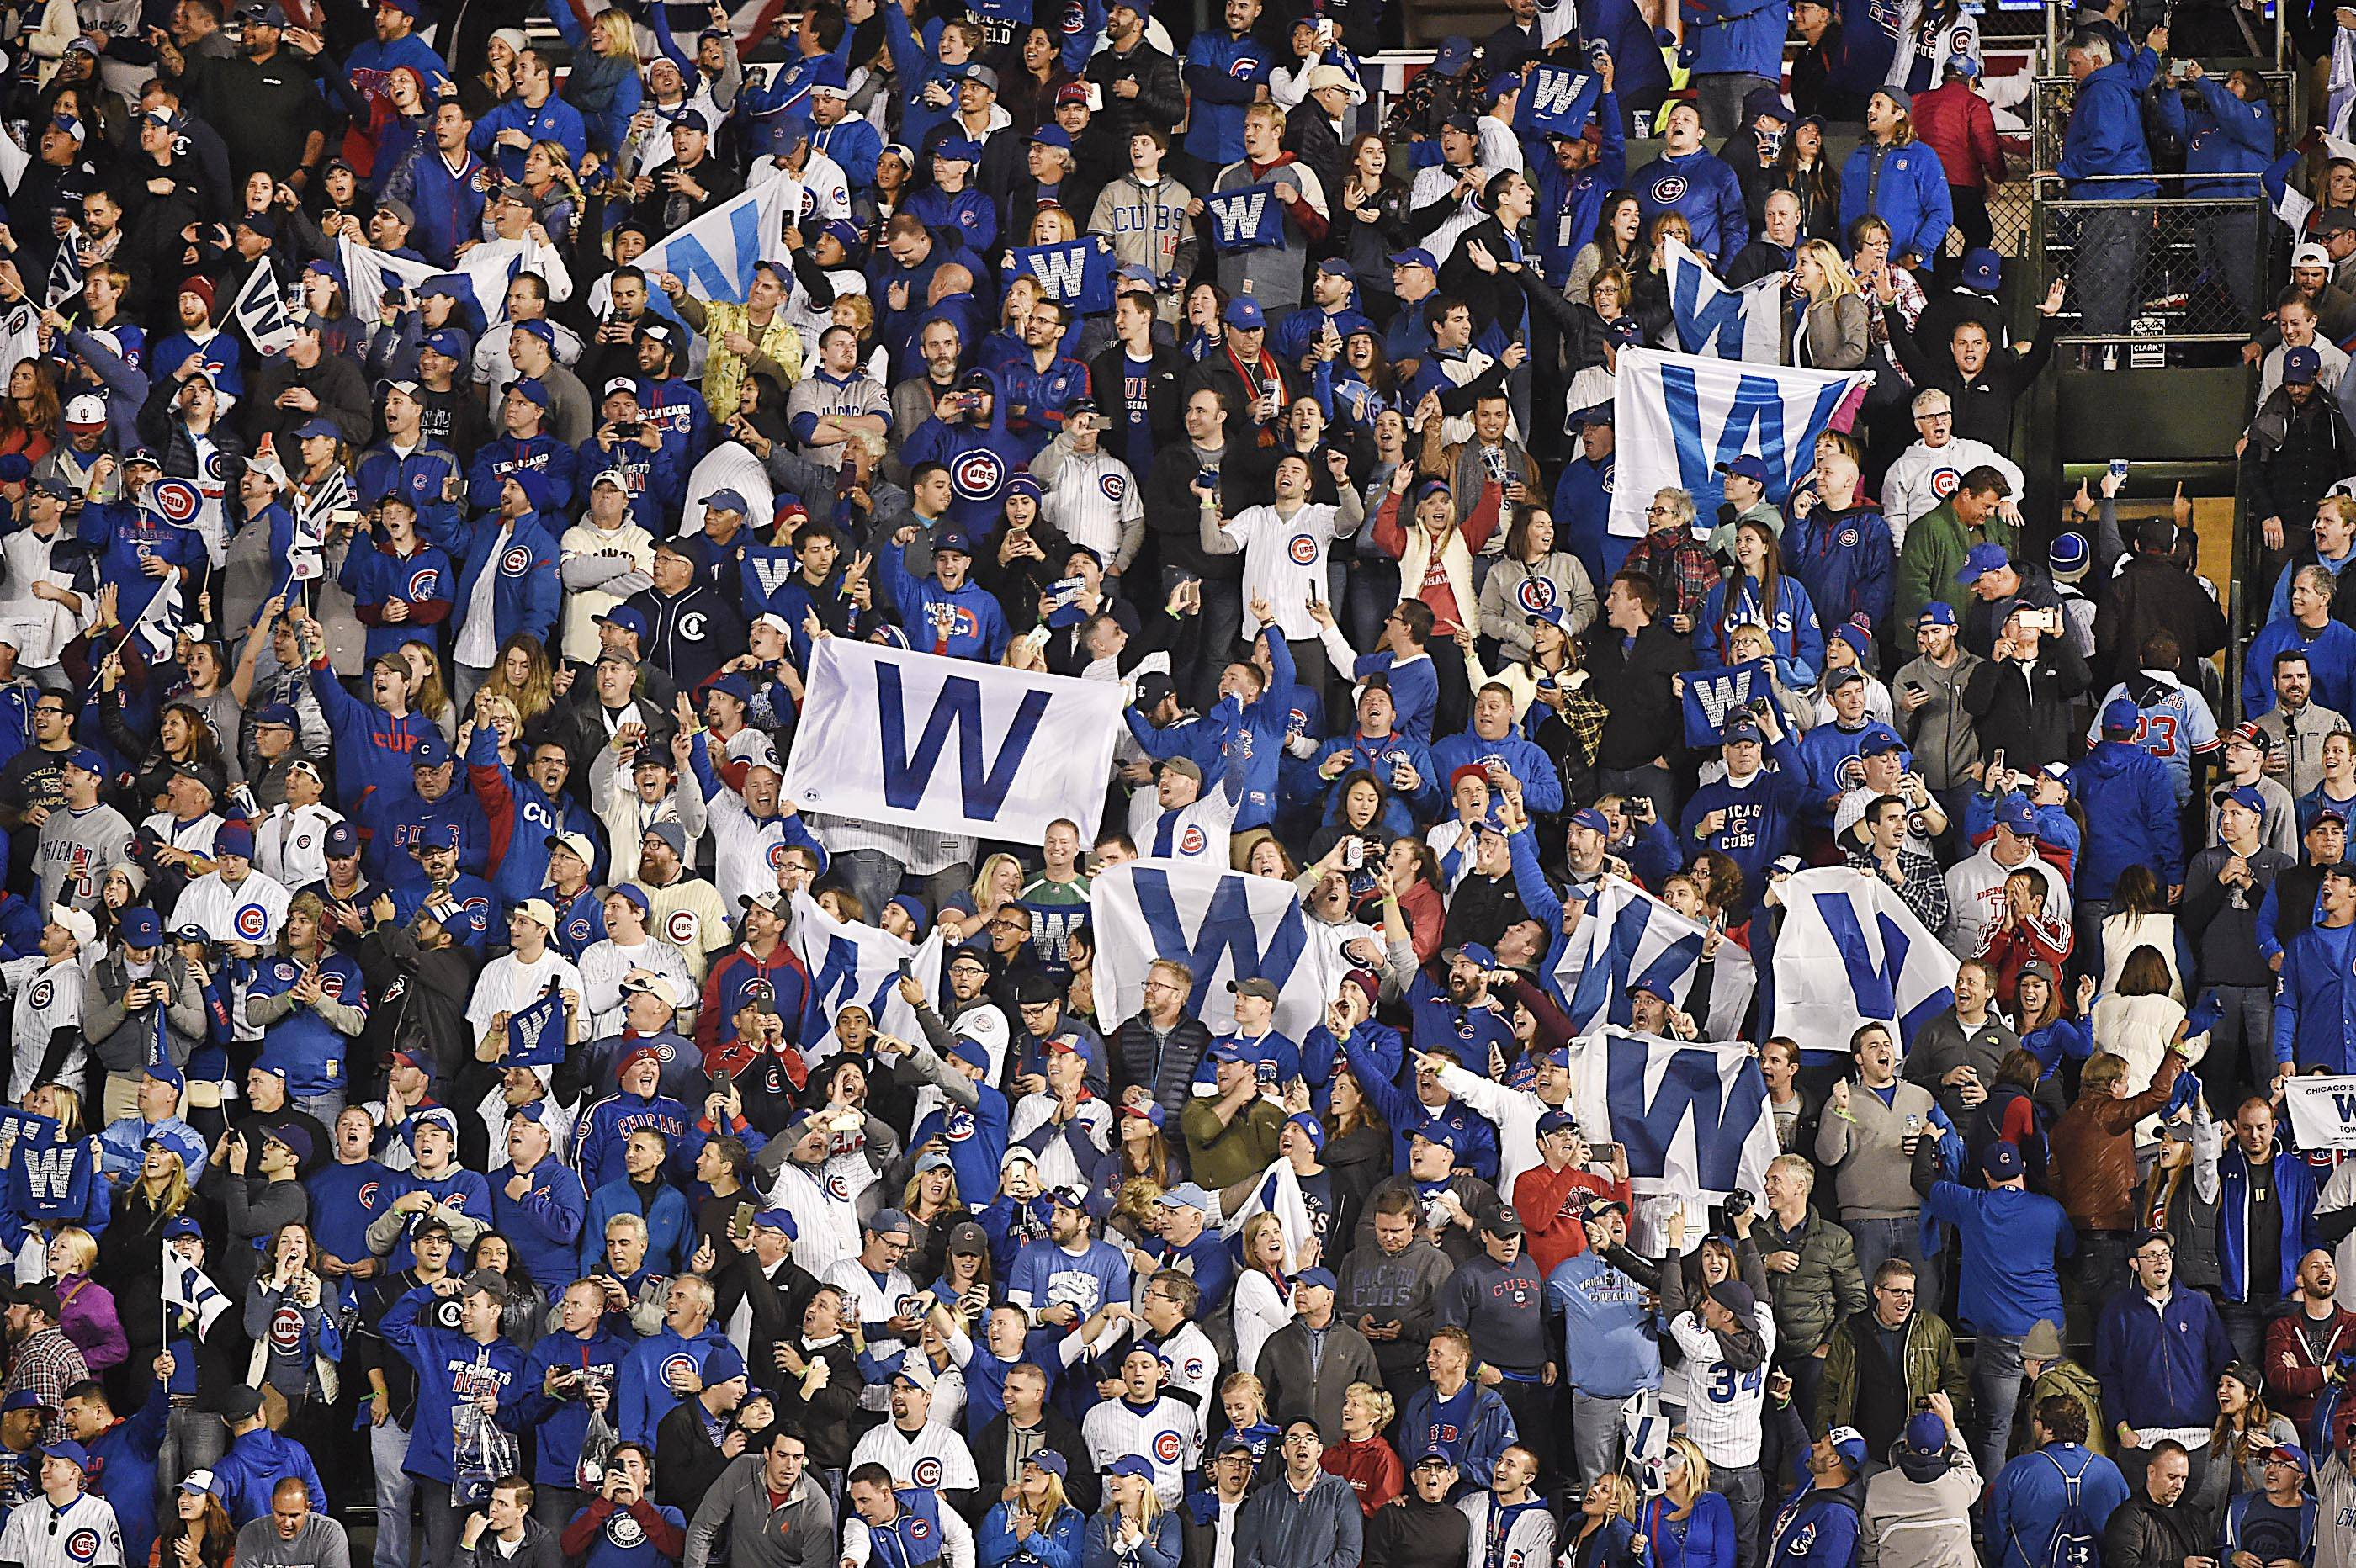 Season ticket holders will have to pay a more for playoff and World Series tickets if the Cubs advance this season.